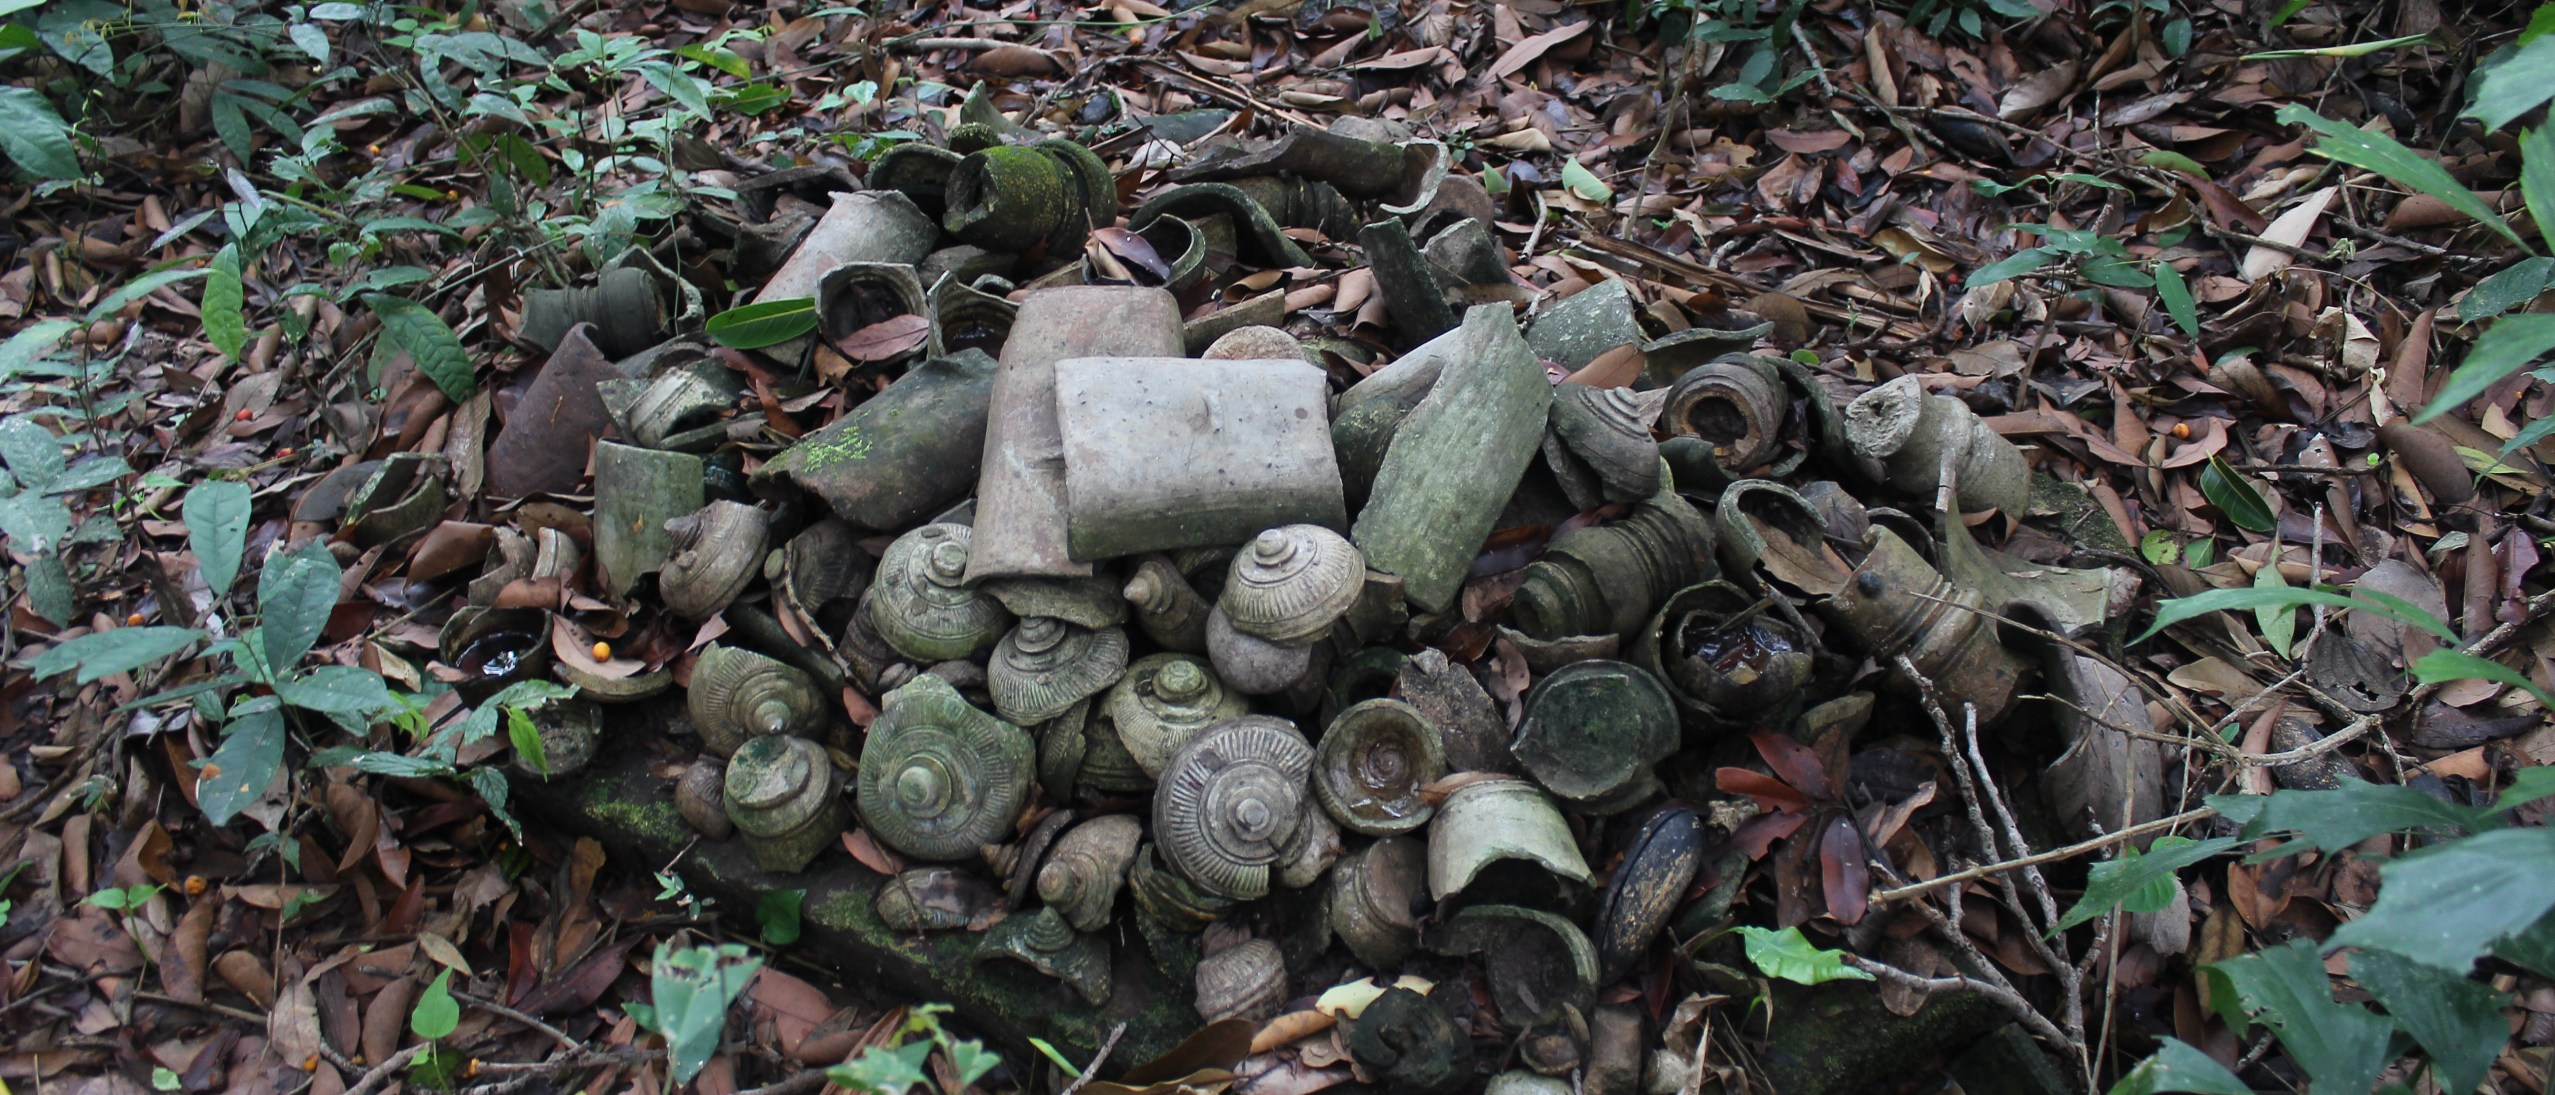 Pottery shards in a pile on leafy ground